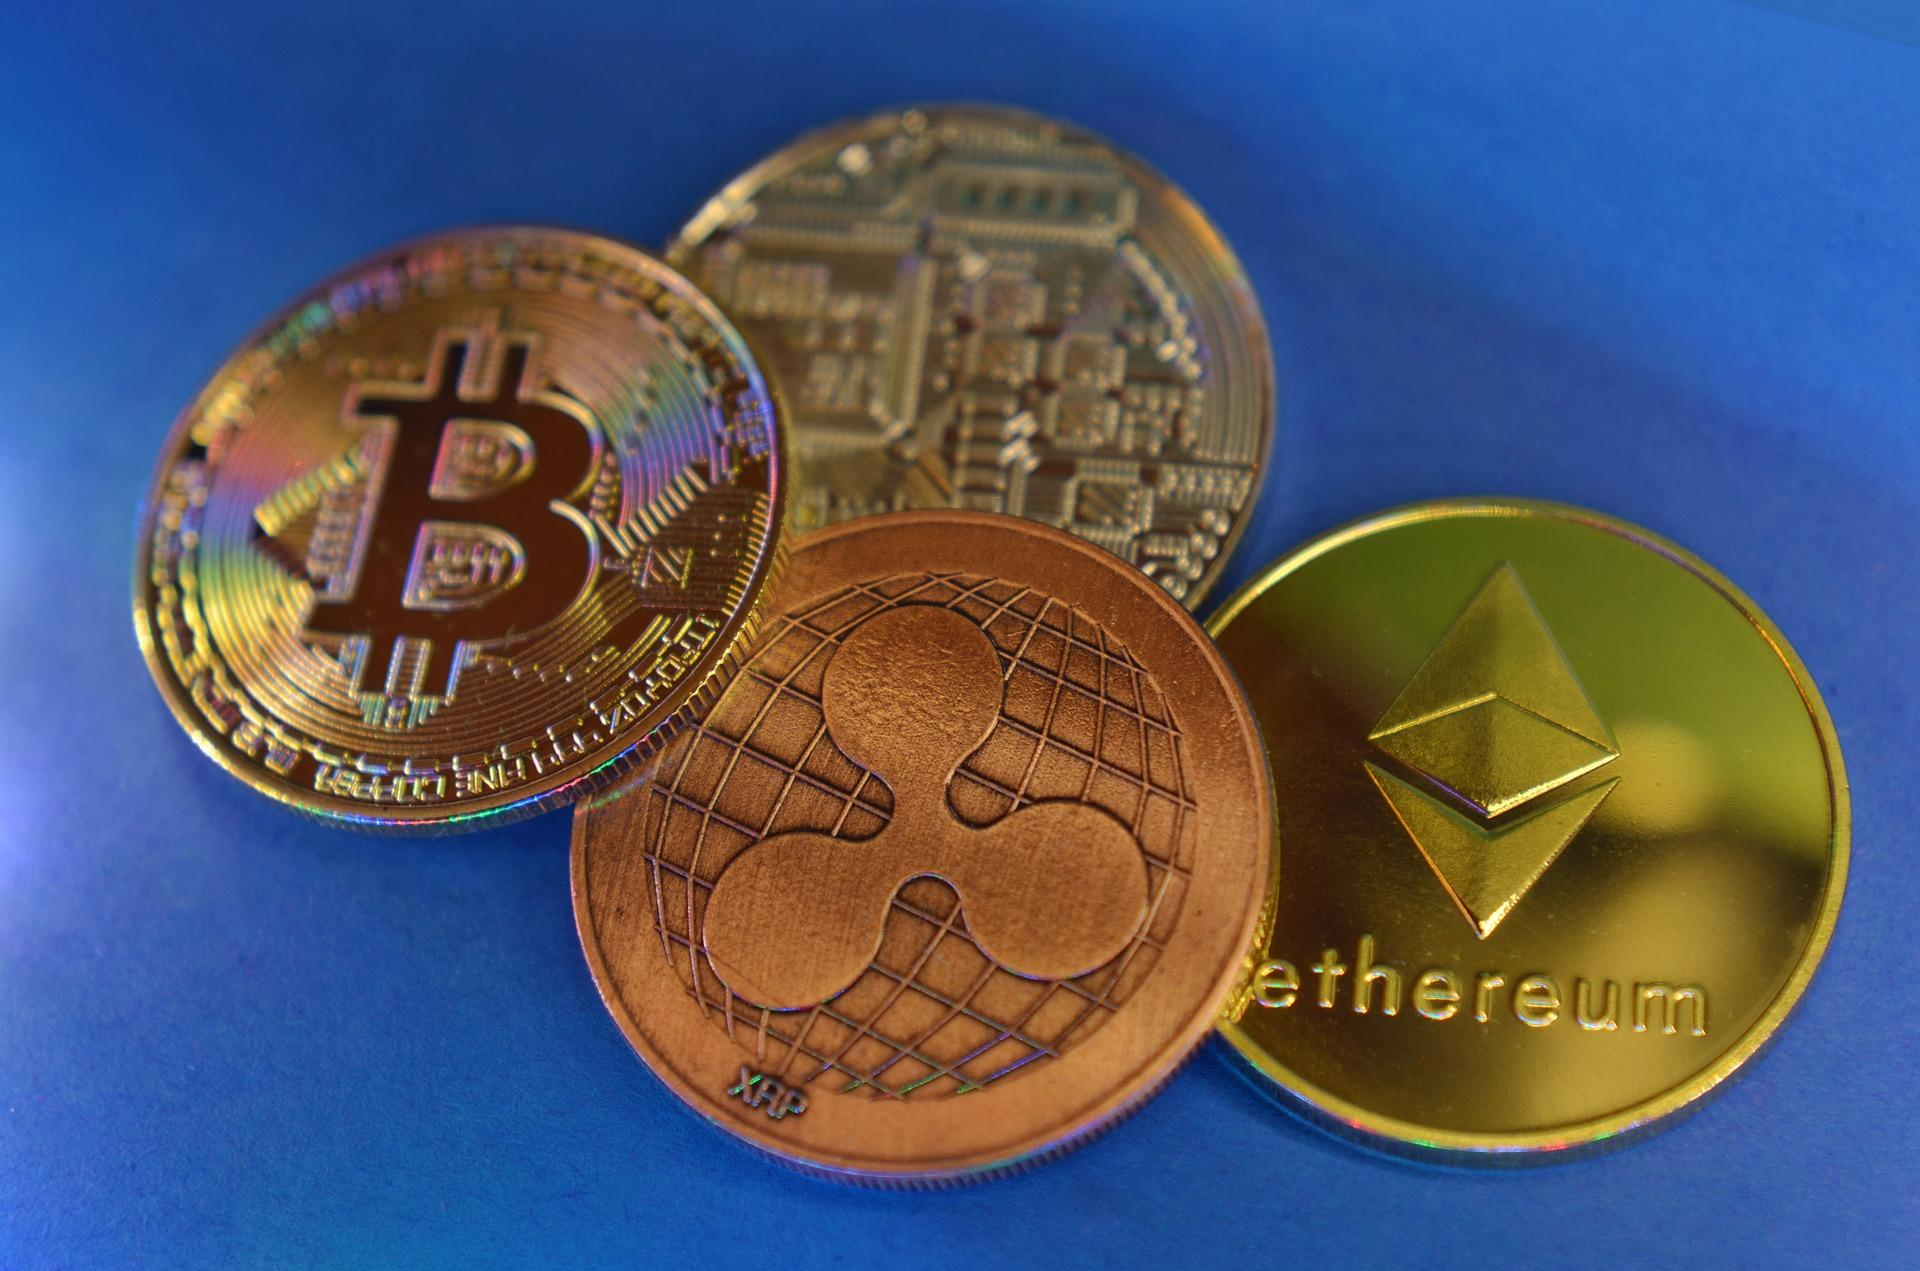 Various cryptocurrencies are displayed including (left to right) Bitcoin, XRP, and Ethereum. (Image by Miloslav Hamřík from Pixabay. )